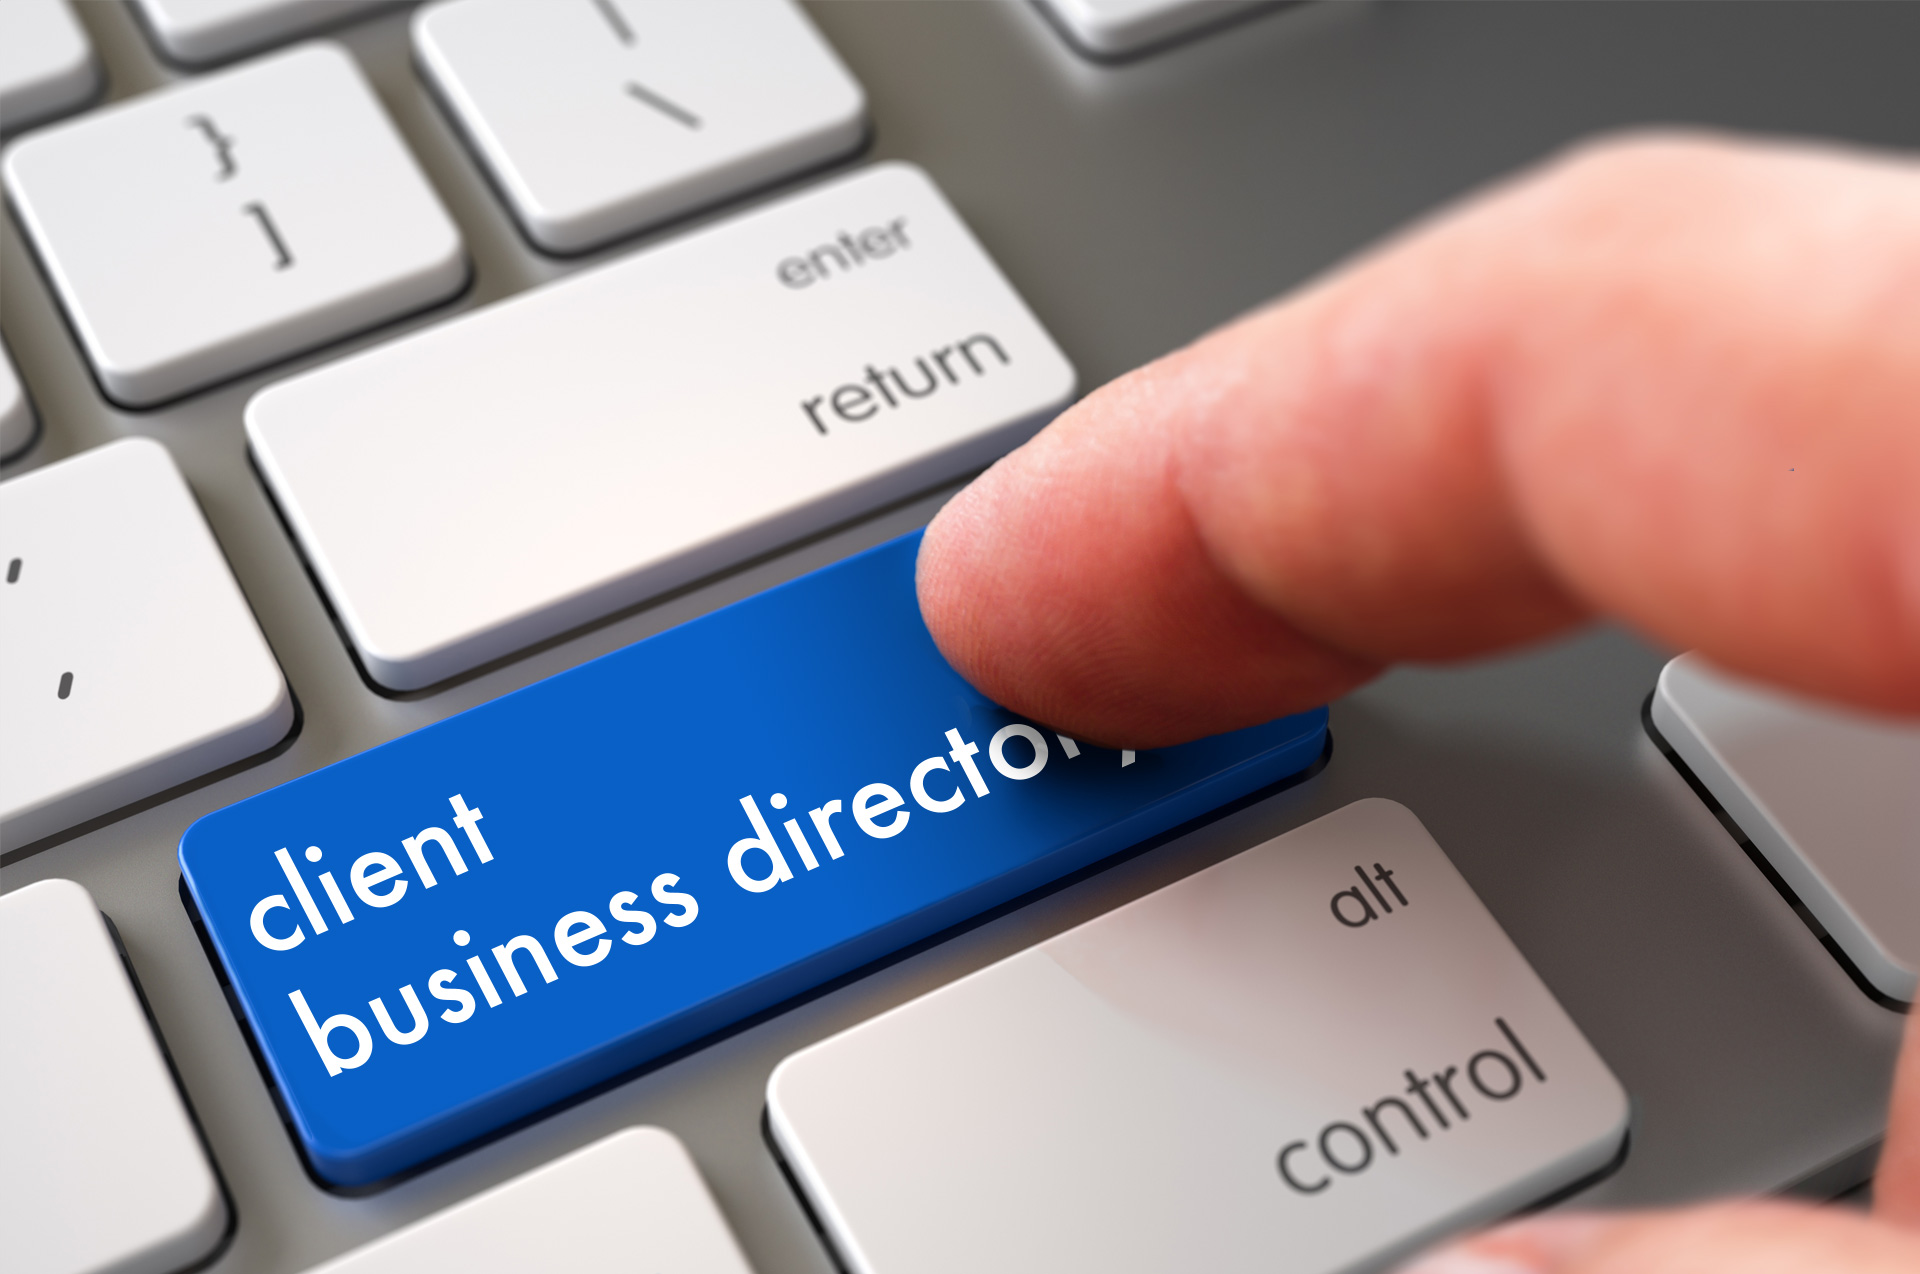 PSE offers a vast directory of client businesses to the public, in support of their ongoing success.